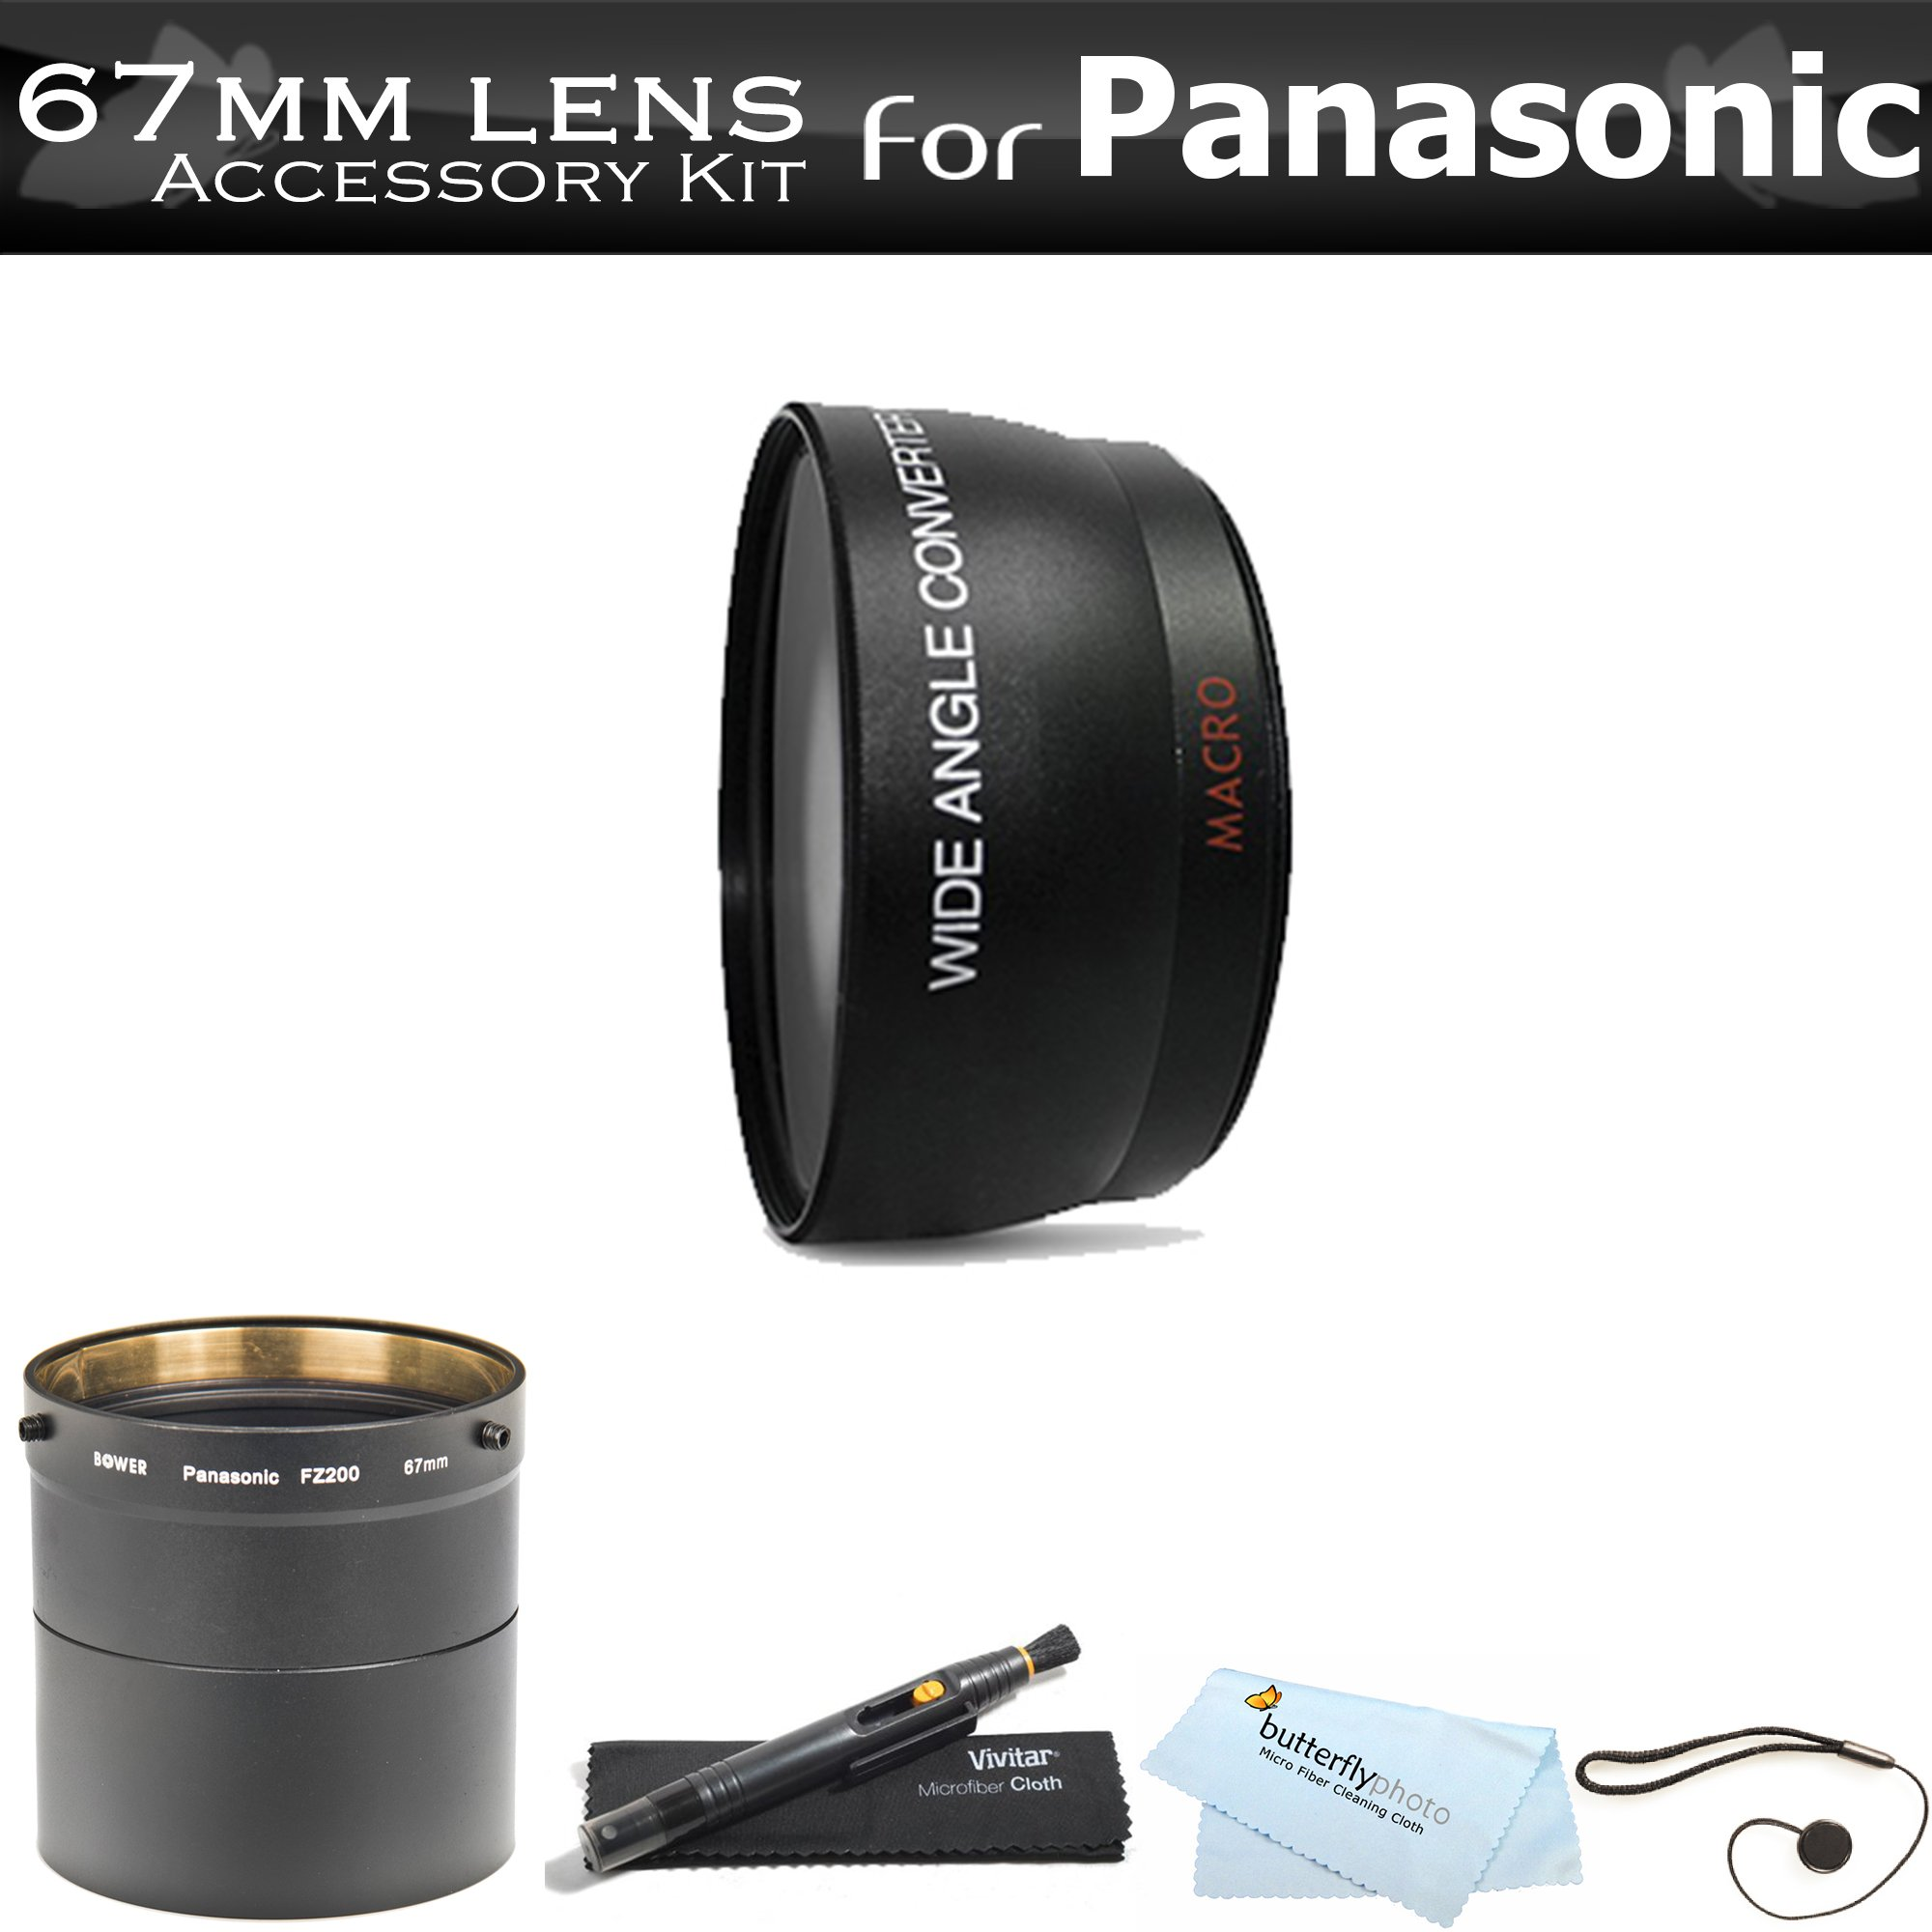 67mm Wide Angle Lens Kit For Panasonic Lumix DMC-FZ200, DMC-FZ200K Digital Camera Includes NecessaryTube Adapter + High Definition .43x Wide Angle Lens W/ Macro + LensPen Cleaning Kit + Lens Cap Keeper + Microfiber Cleaning Cloth